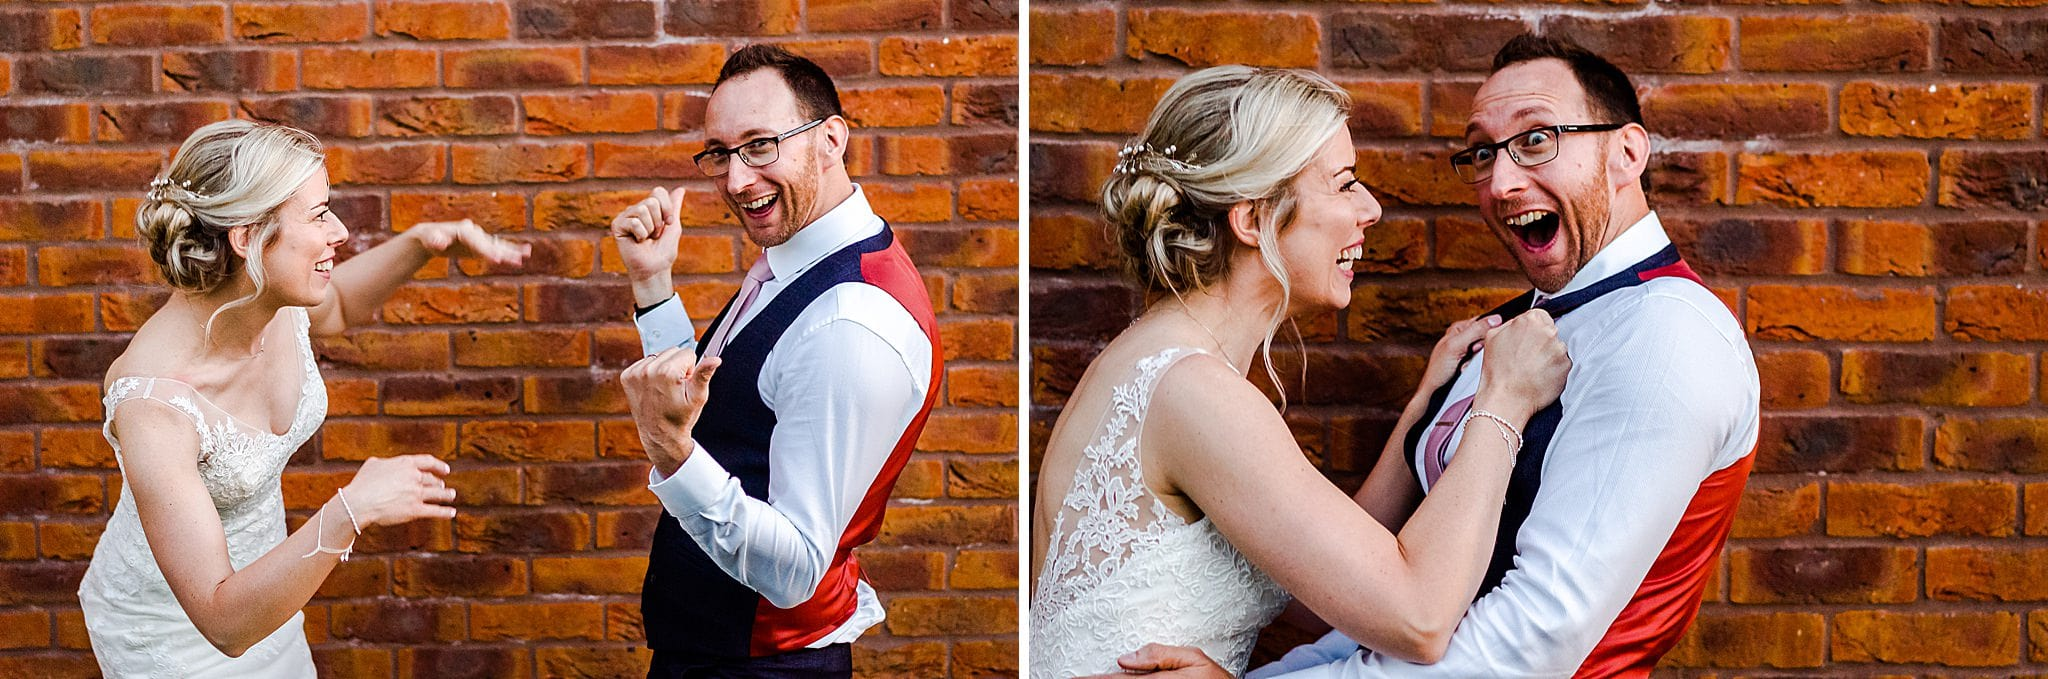 Bride and groom pull silly faces outside Carriage Hall